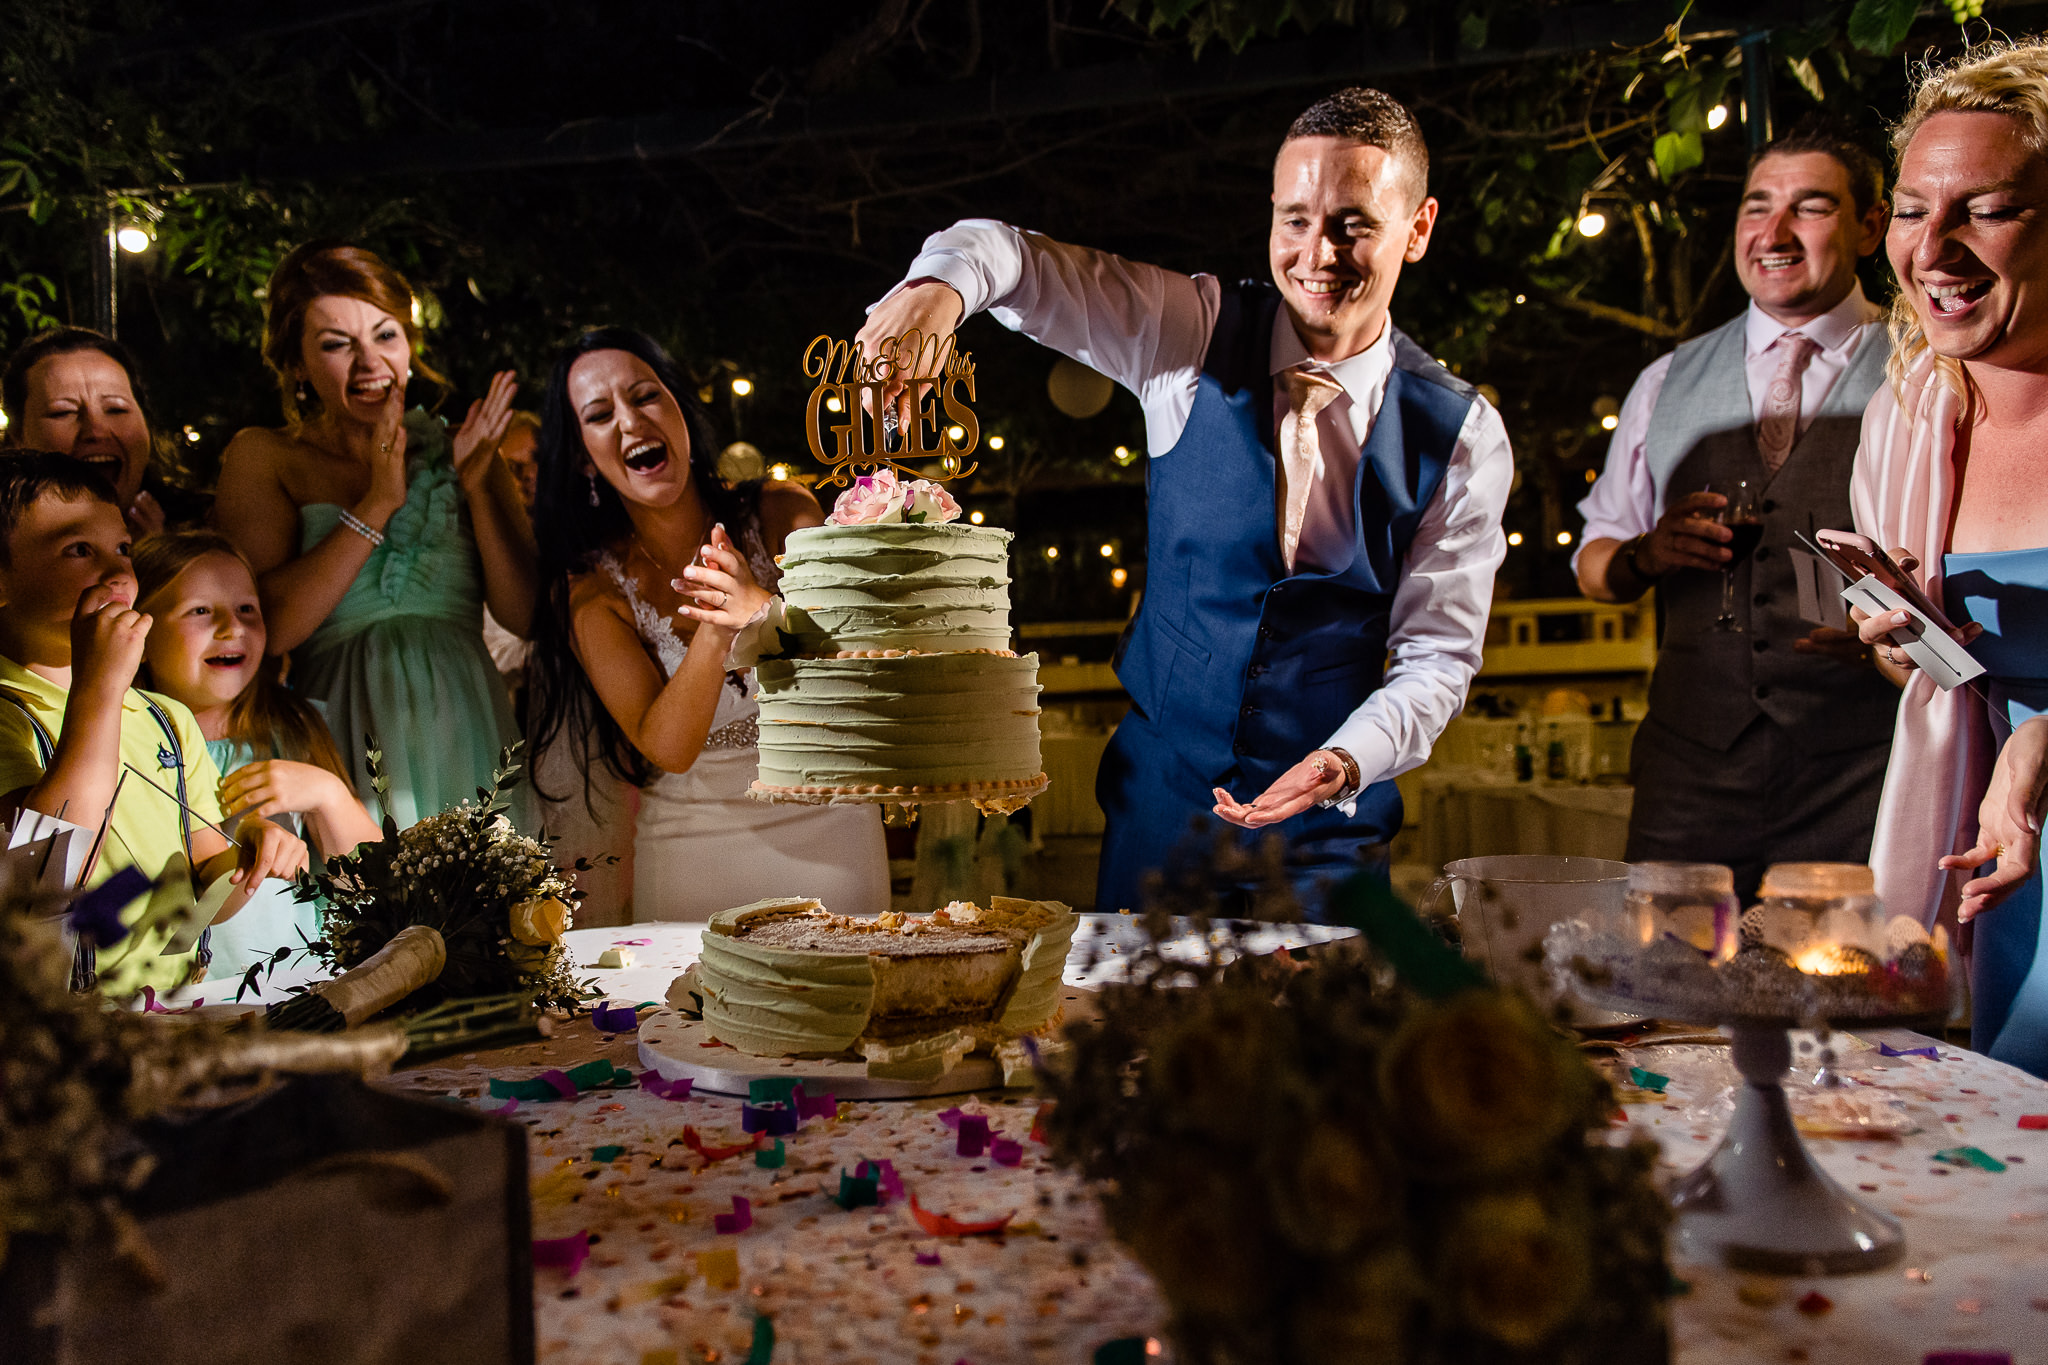 Groom pulls wedding cake apart with cake topper - photo by Shane P. Watts - Malta